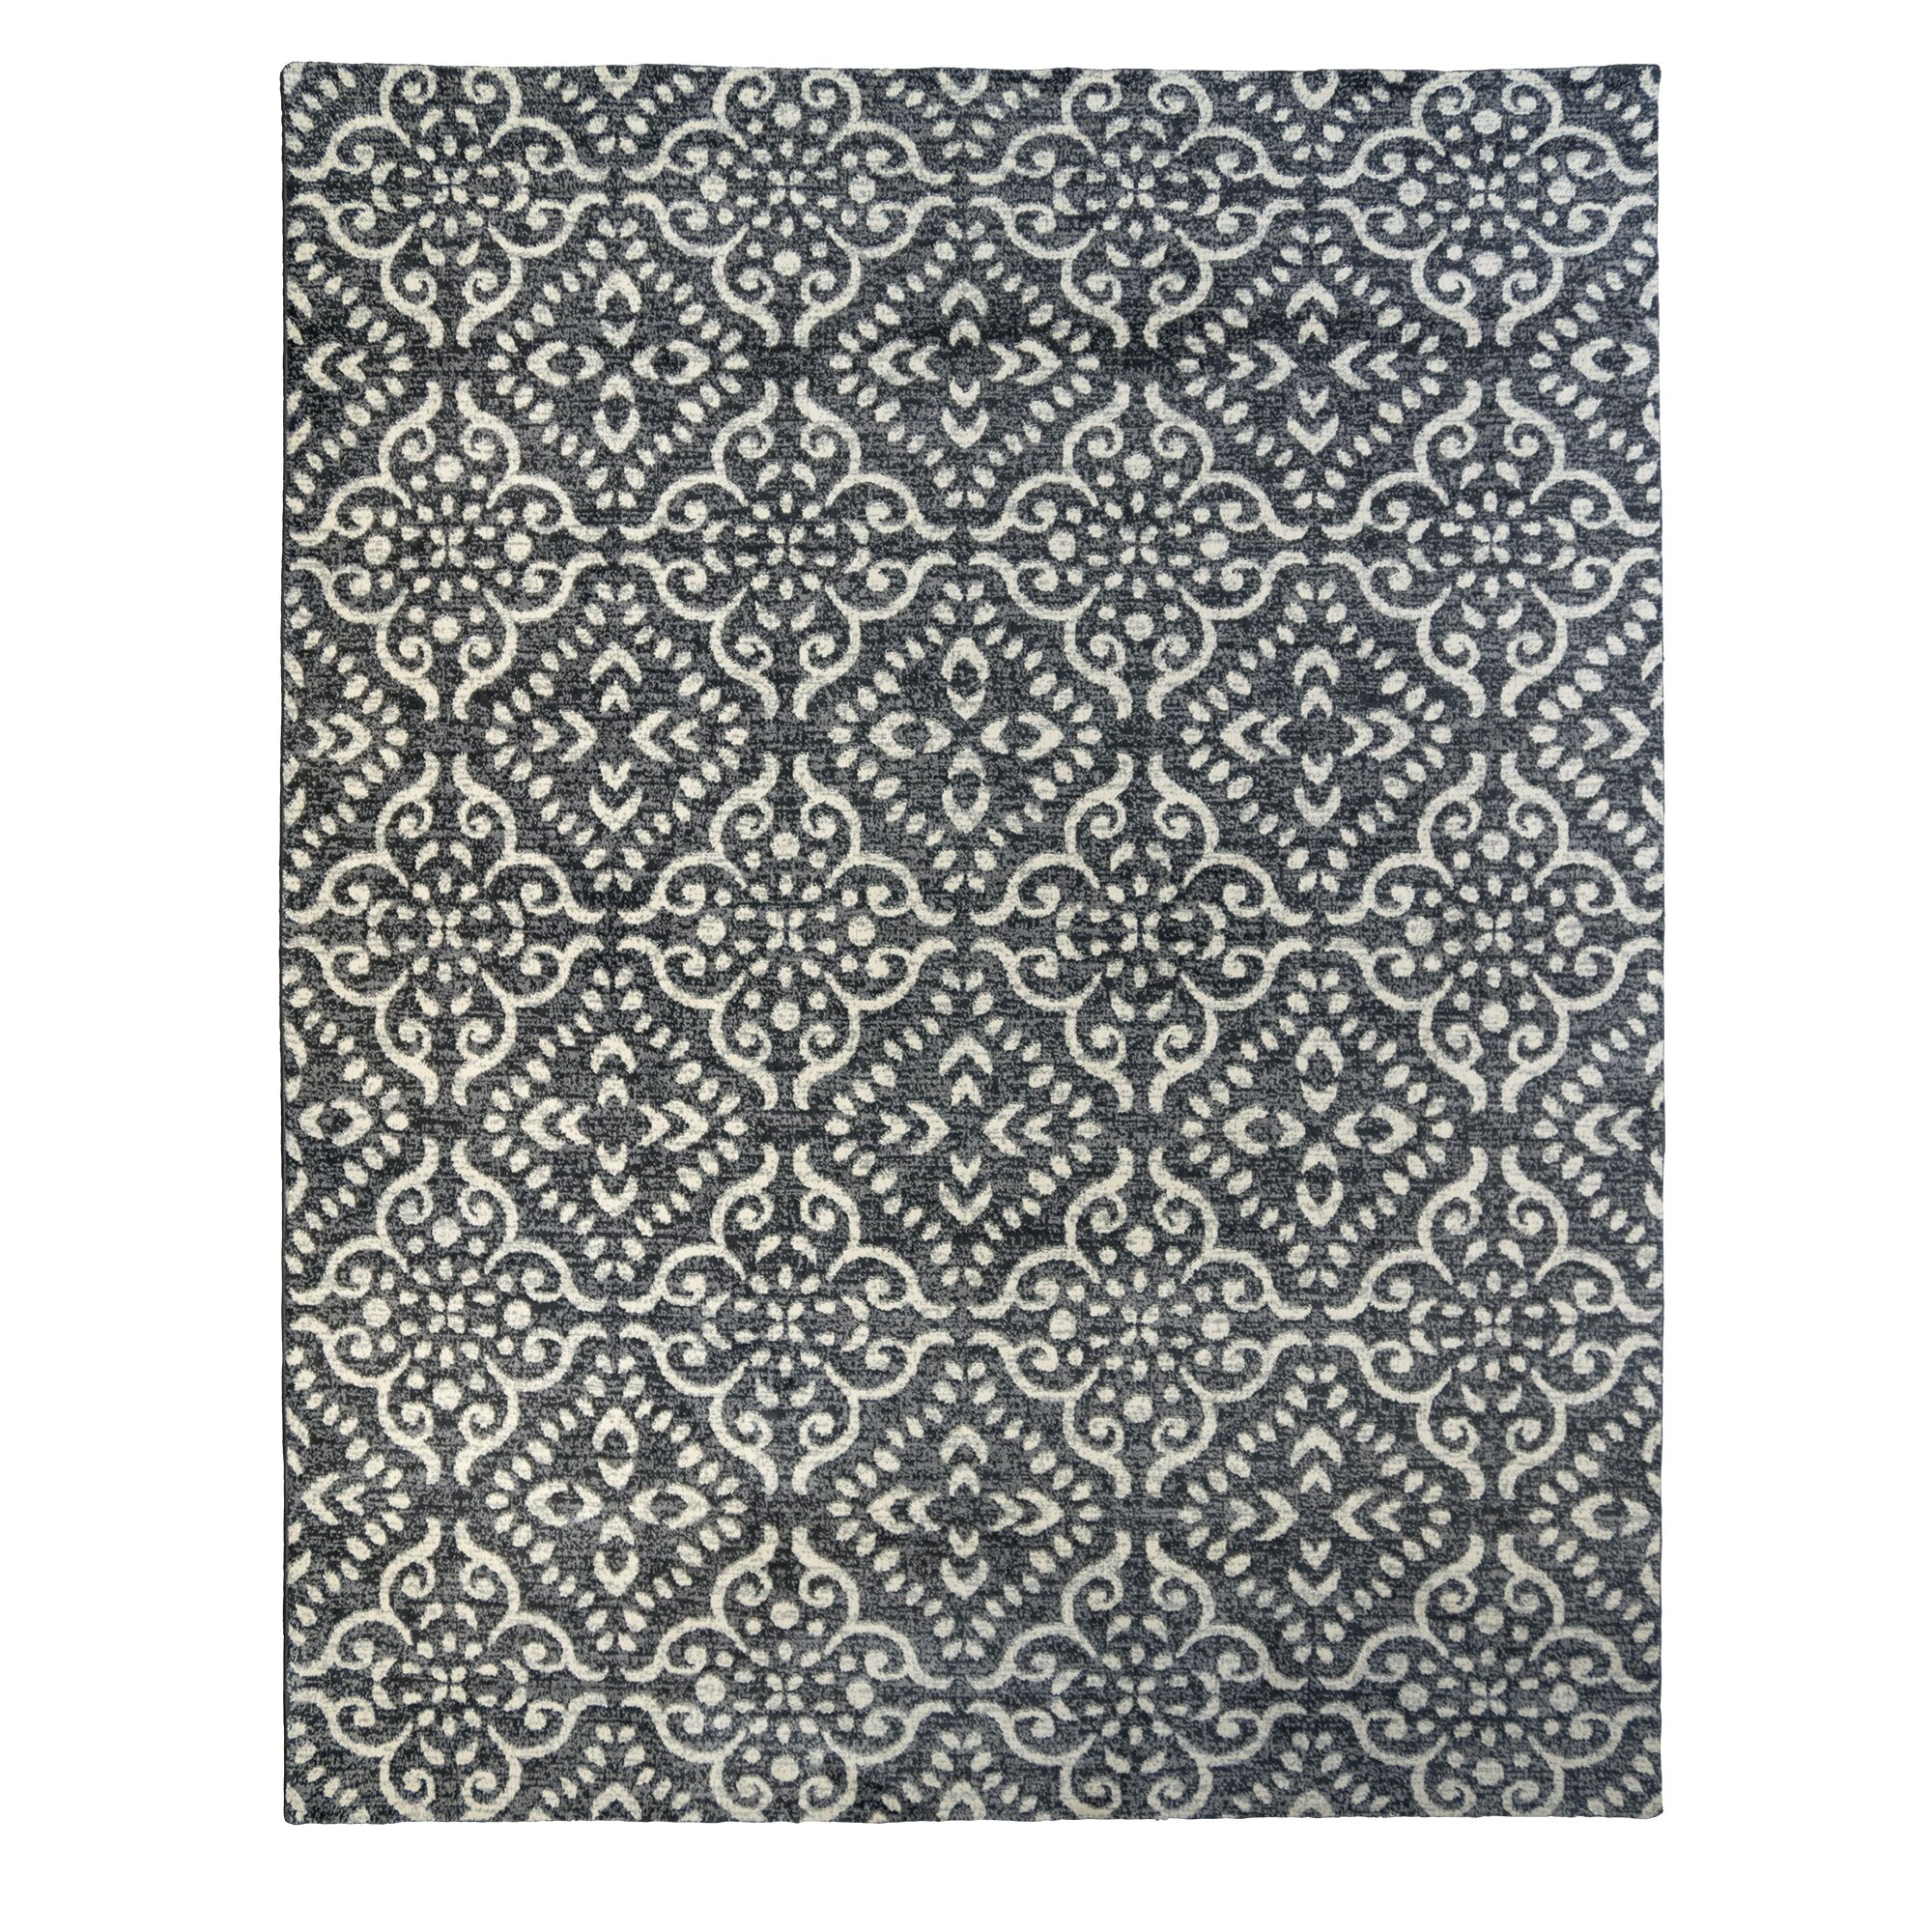 Enya Gray Area Rug Rug Size: Rectangle 8'10